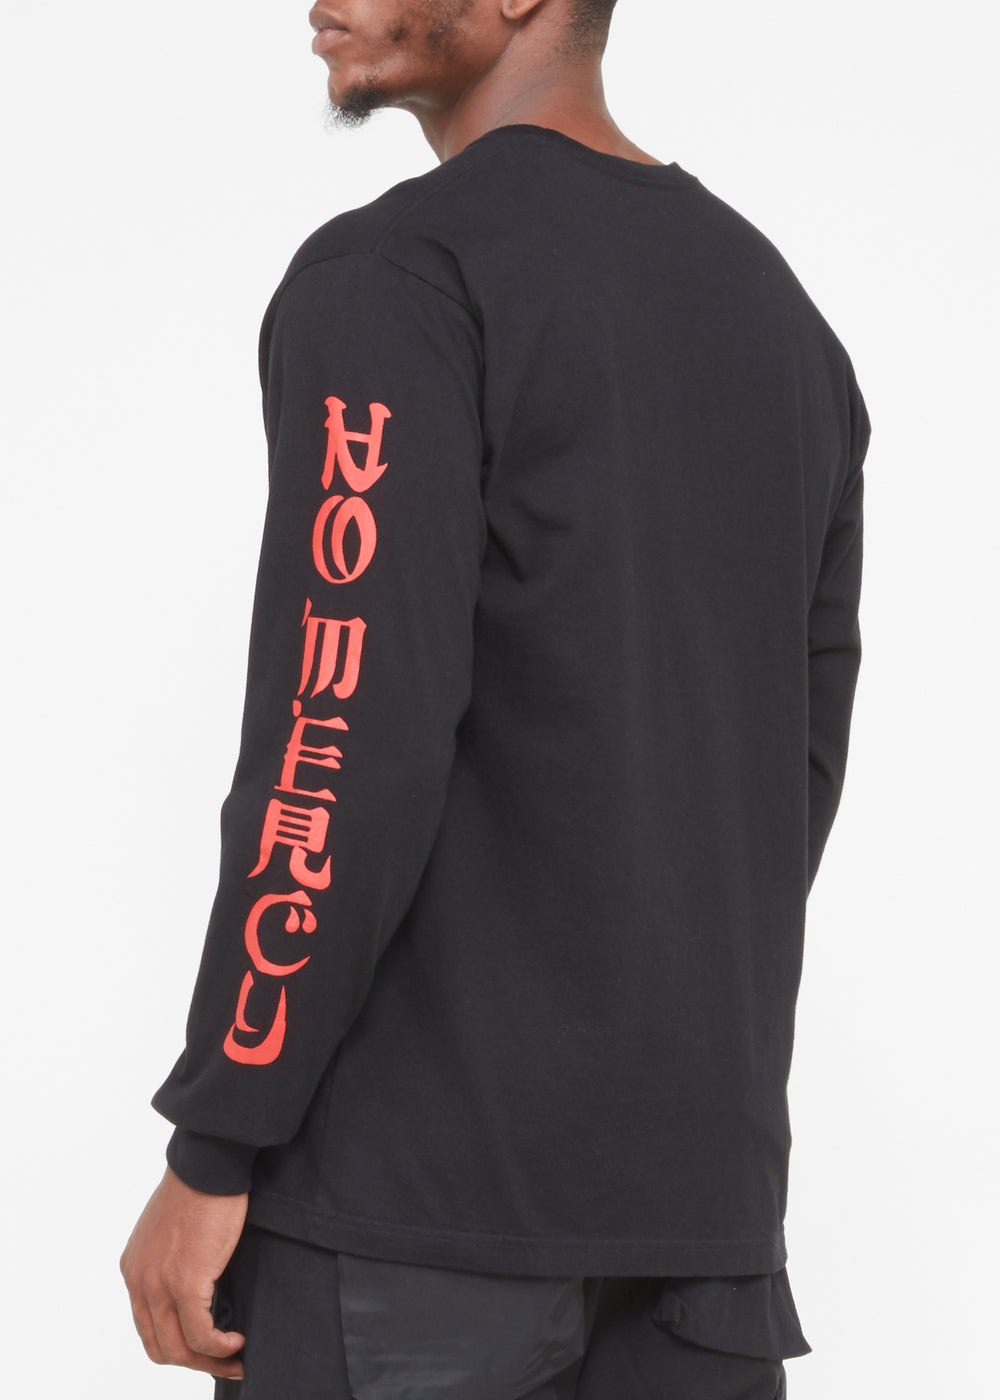 nbhd-pullover-swtr-192pcnh-lt01-blk-red-blk-red-3